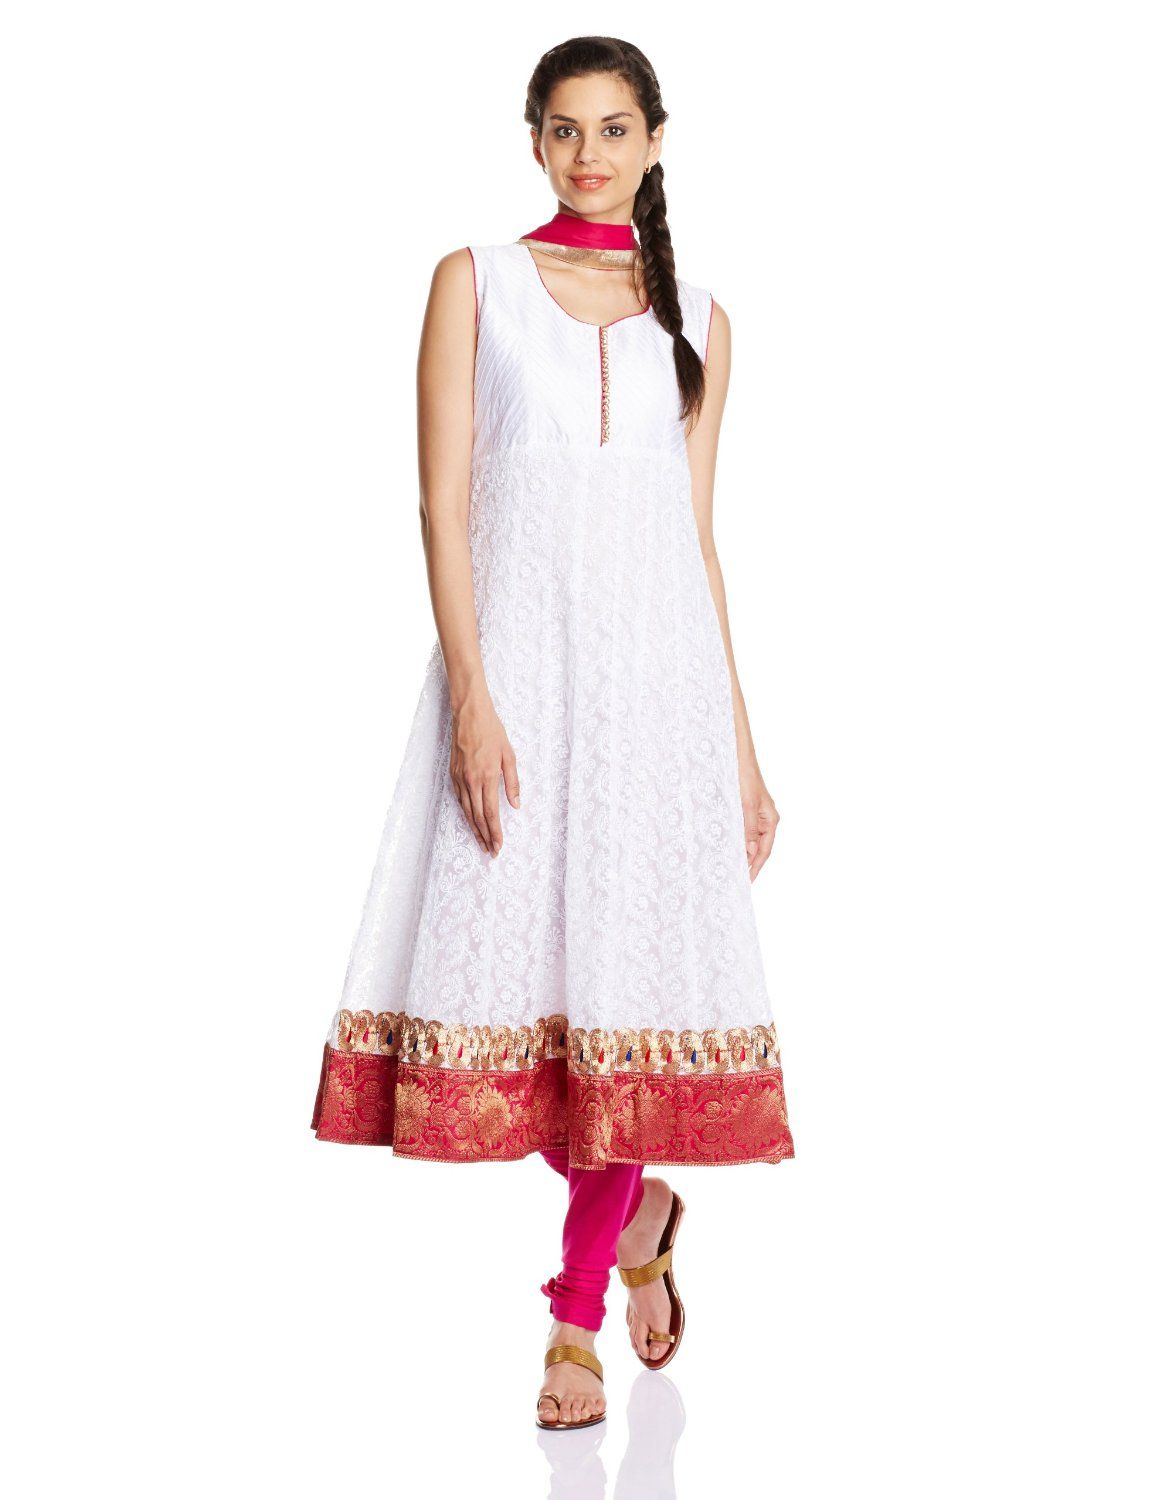 Buy Online Shopping Deals Offers In India Soch chikankari anarkali ...